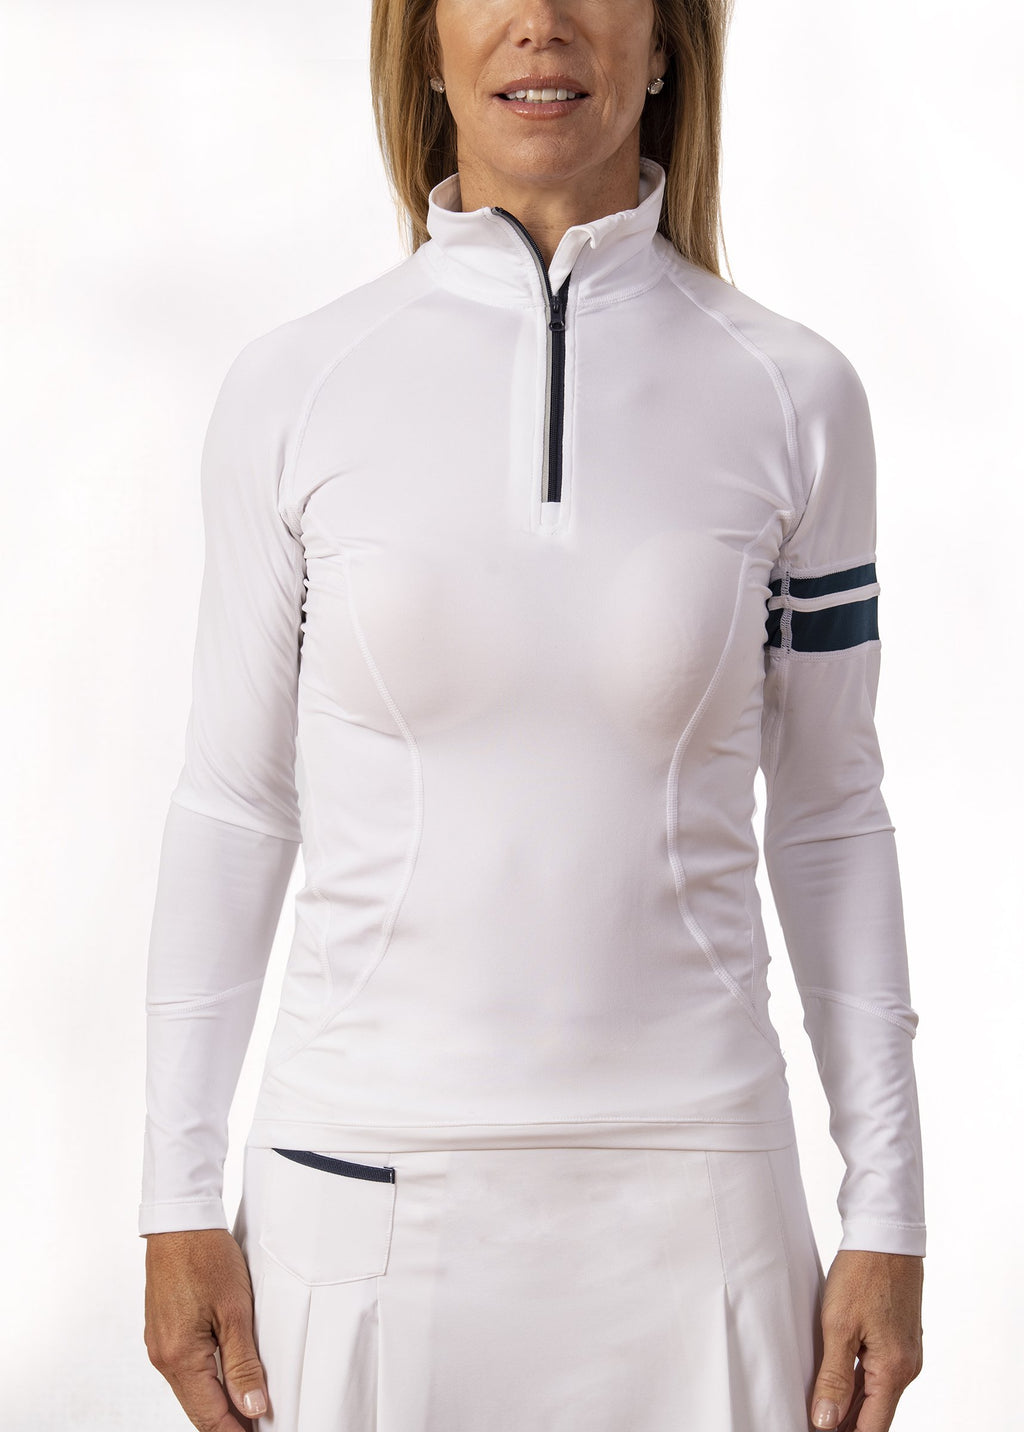 Pamela Long Sleeve Zip-Up - White/ Navy